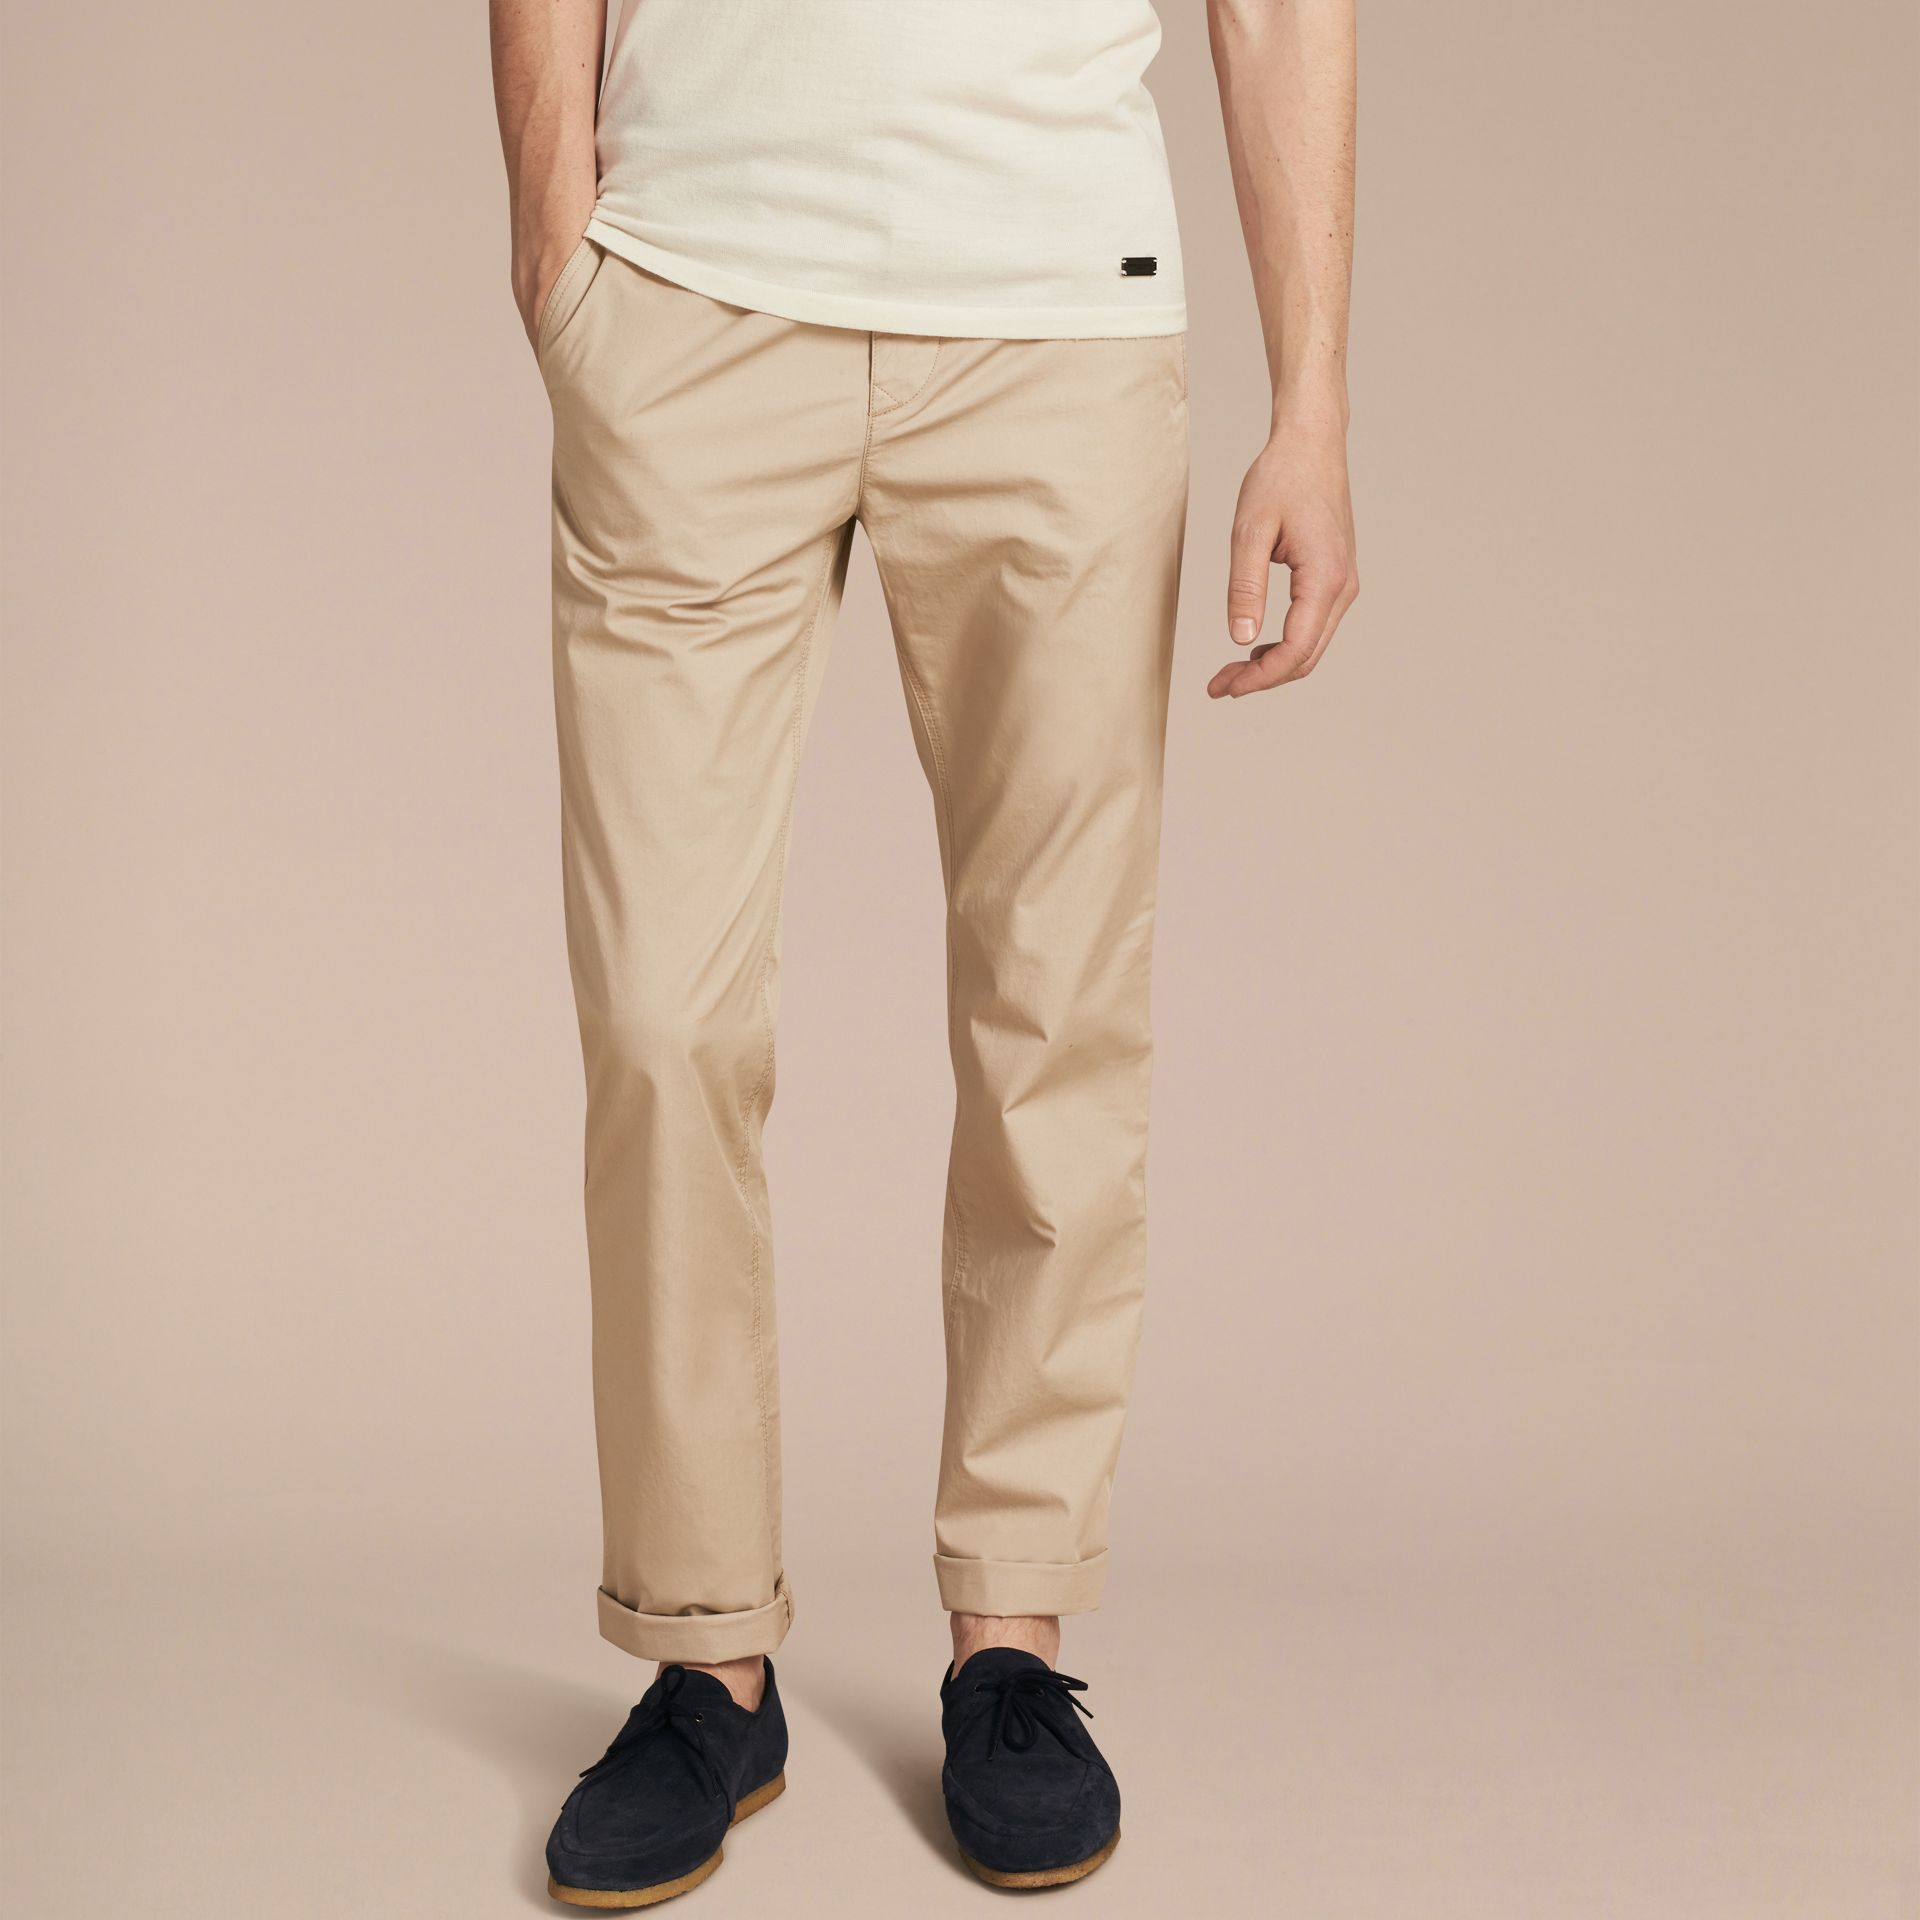 Straight Fit Cotton Chinos in Taupe - Men | Burberry - gallery image 6